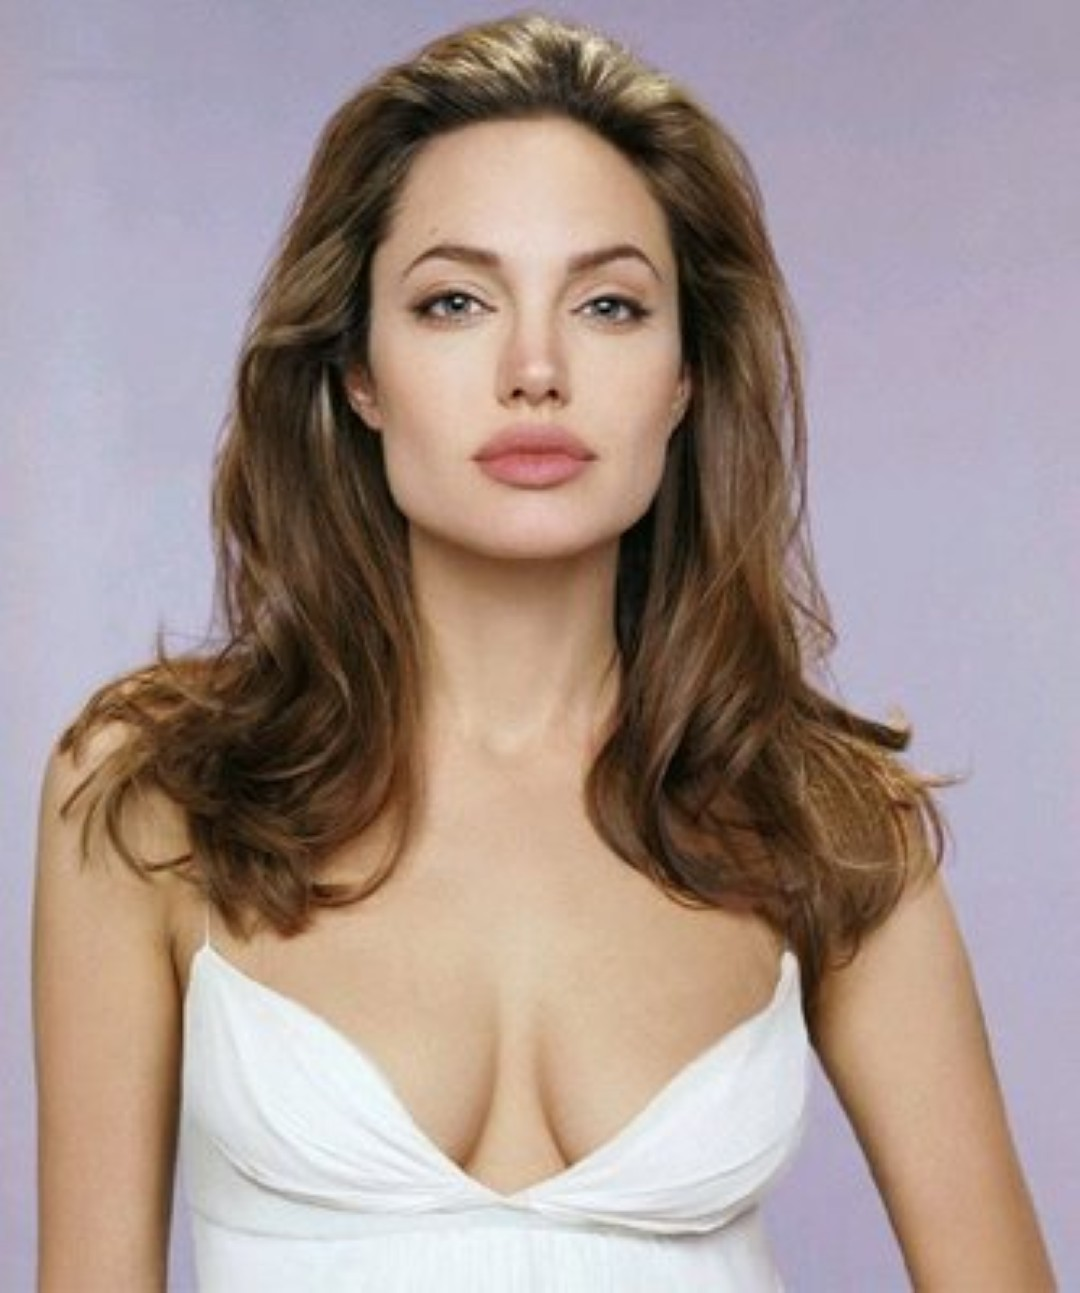 Angelina Jolie Hot http://sizlingpeople com/wp-content/uploads